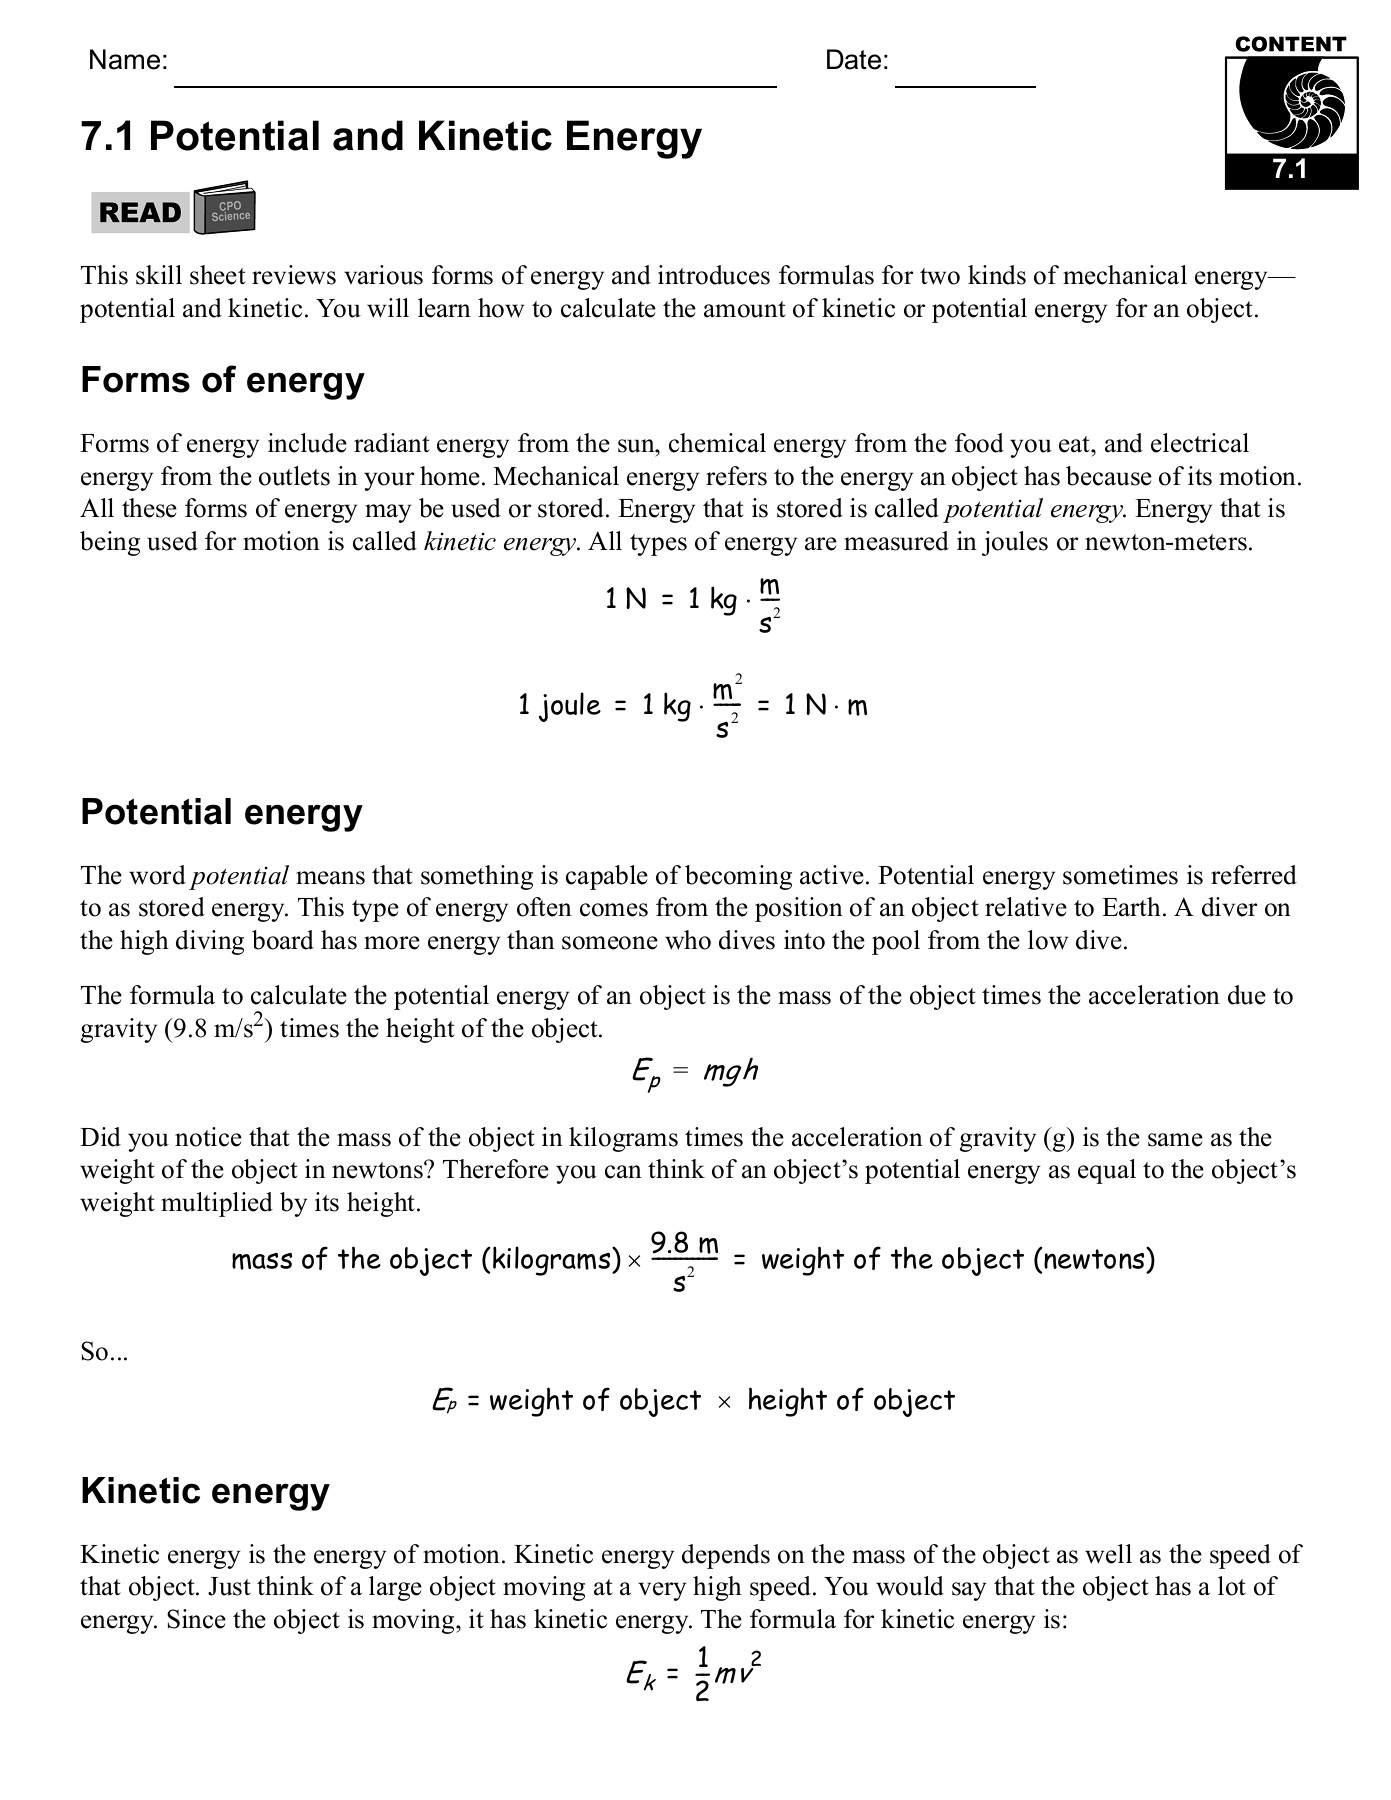 7 1 Potential And Kinetic Energy Cpo